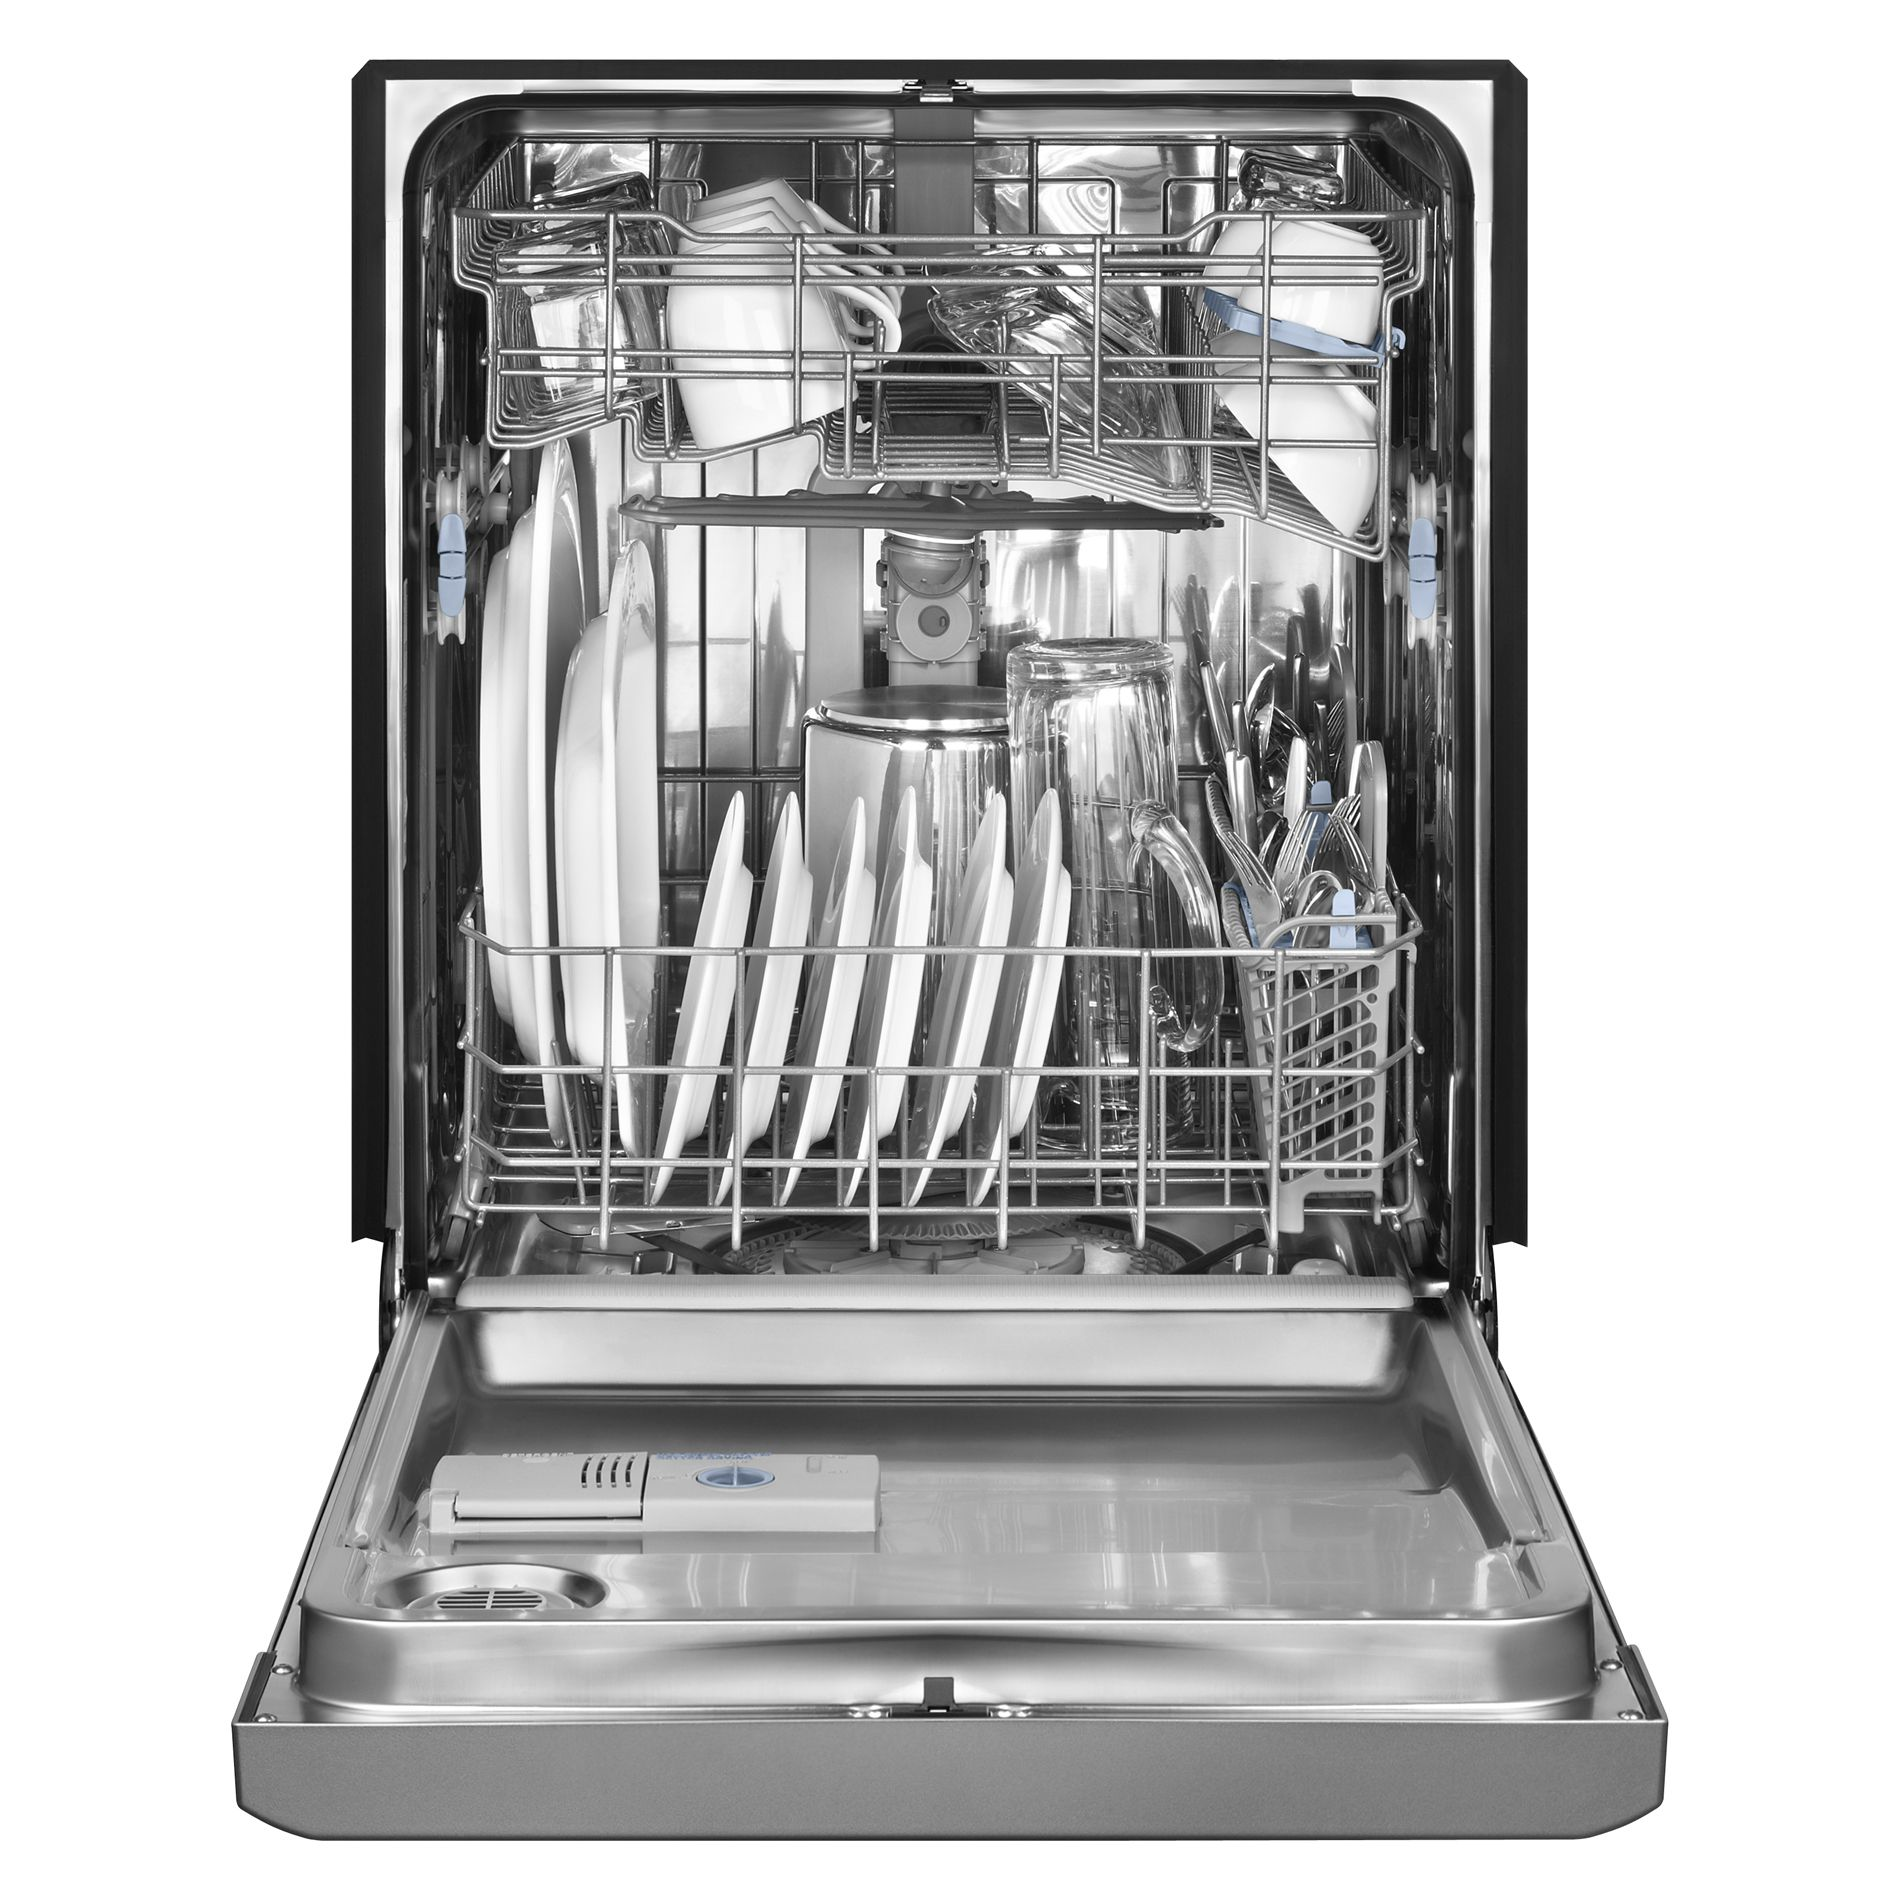 Maytag 24 in. JetClean® Plus Built-In Dishwasher w/ SteamClean - Stainless Steel